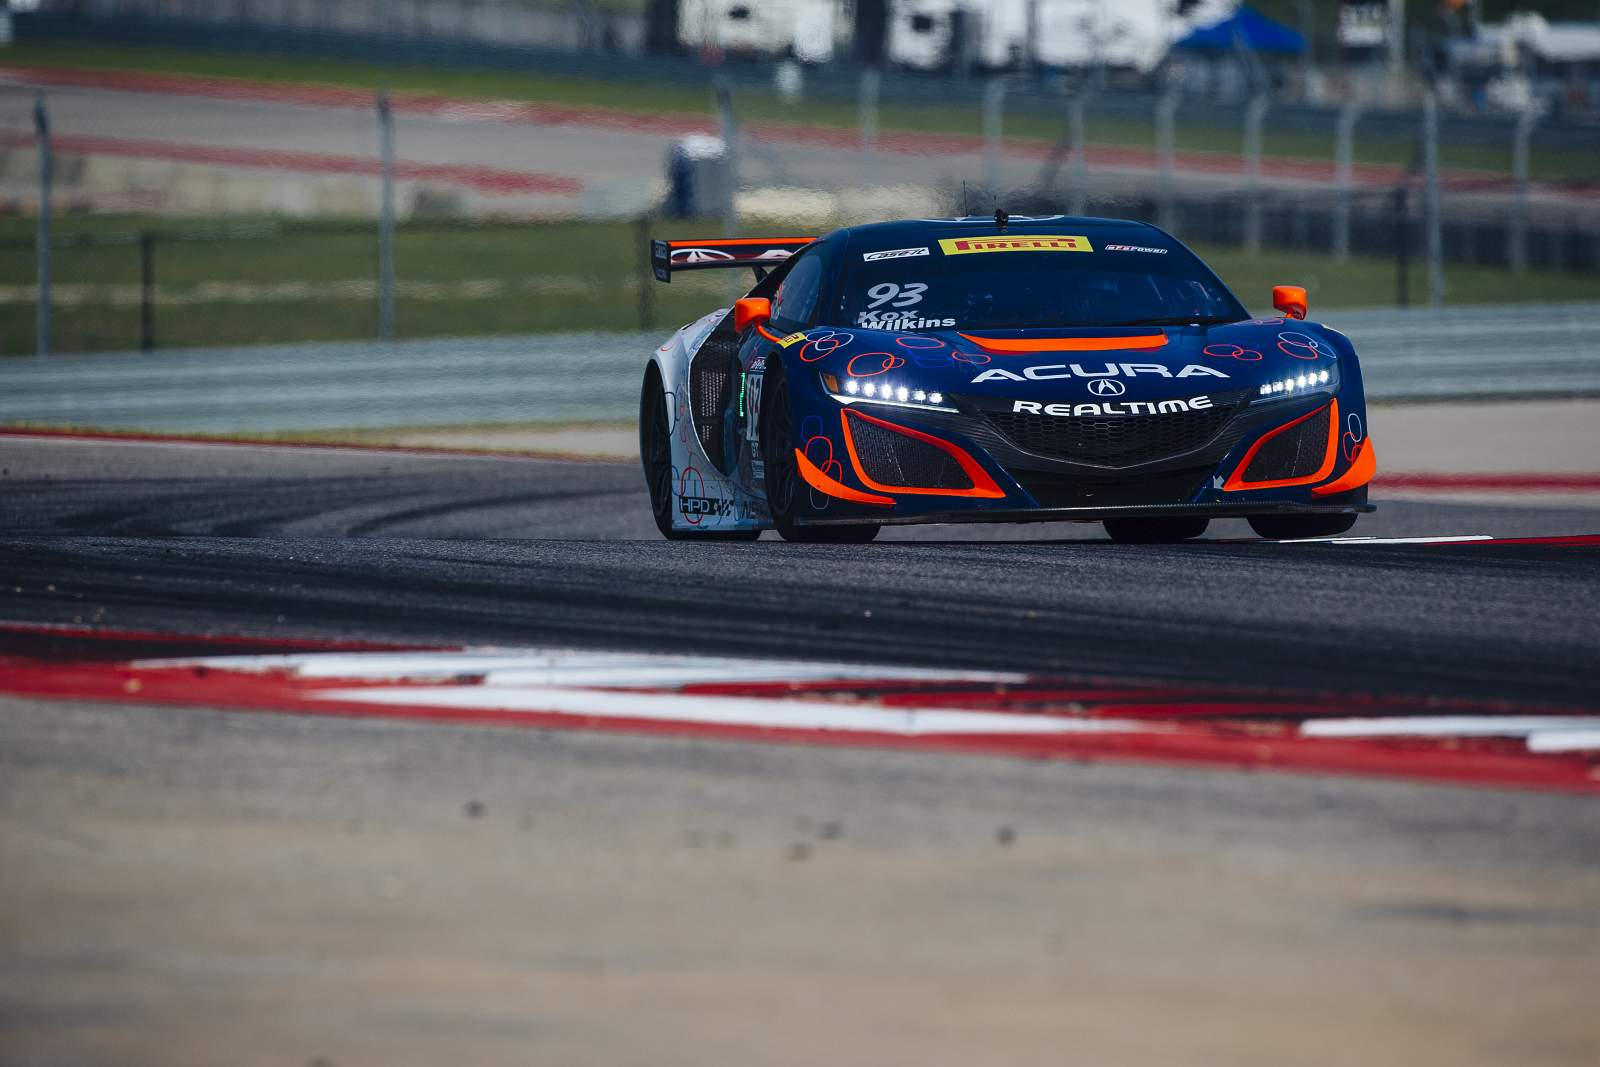 peter-kox-realtime-racing-pirelli-world-challenge-cota--002